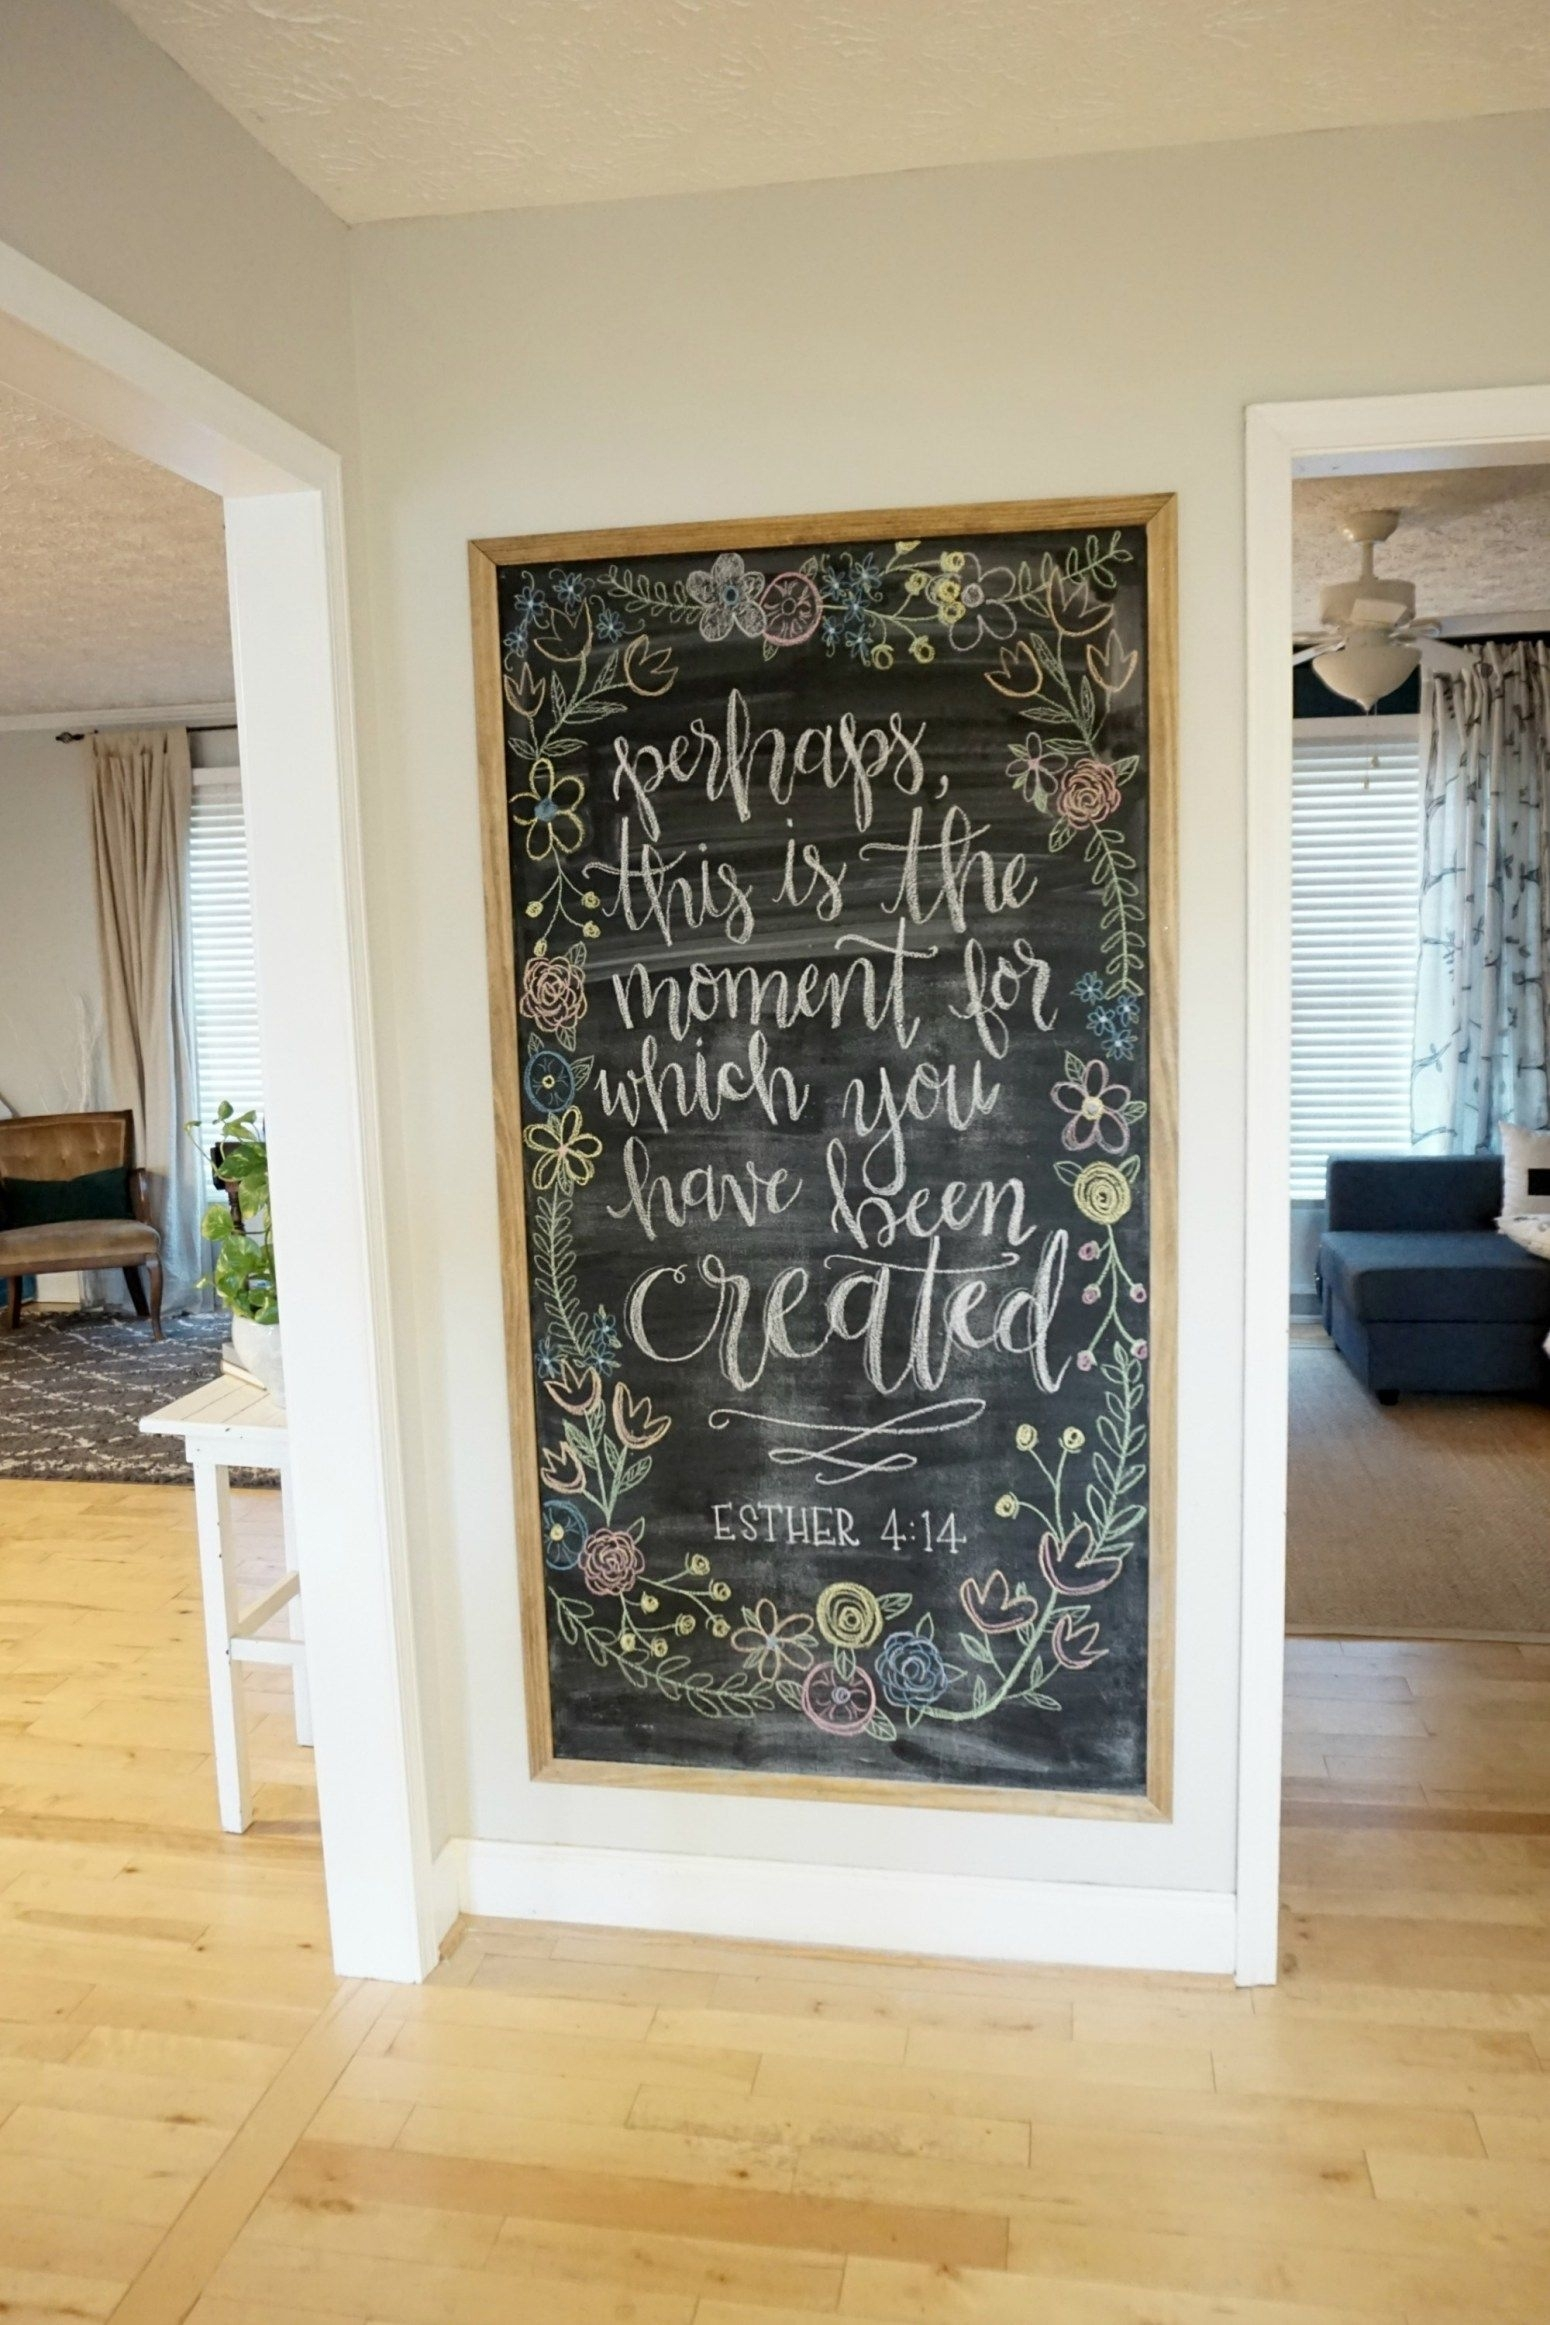 12 Affordable Ideas For Large Wall Decor | Chalkboard Inspirations Intended For Newest Large Wall Art (View 1 of 15)